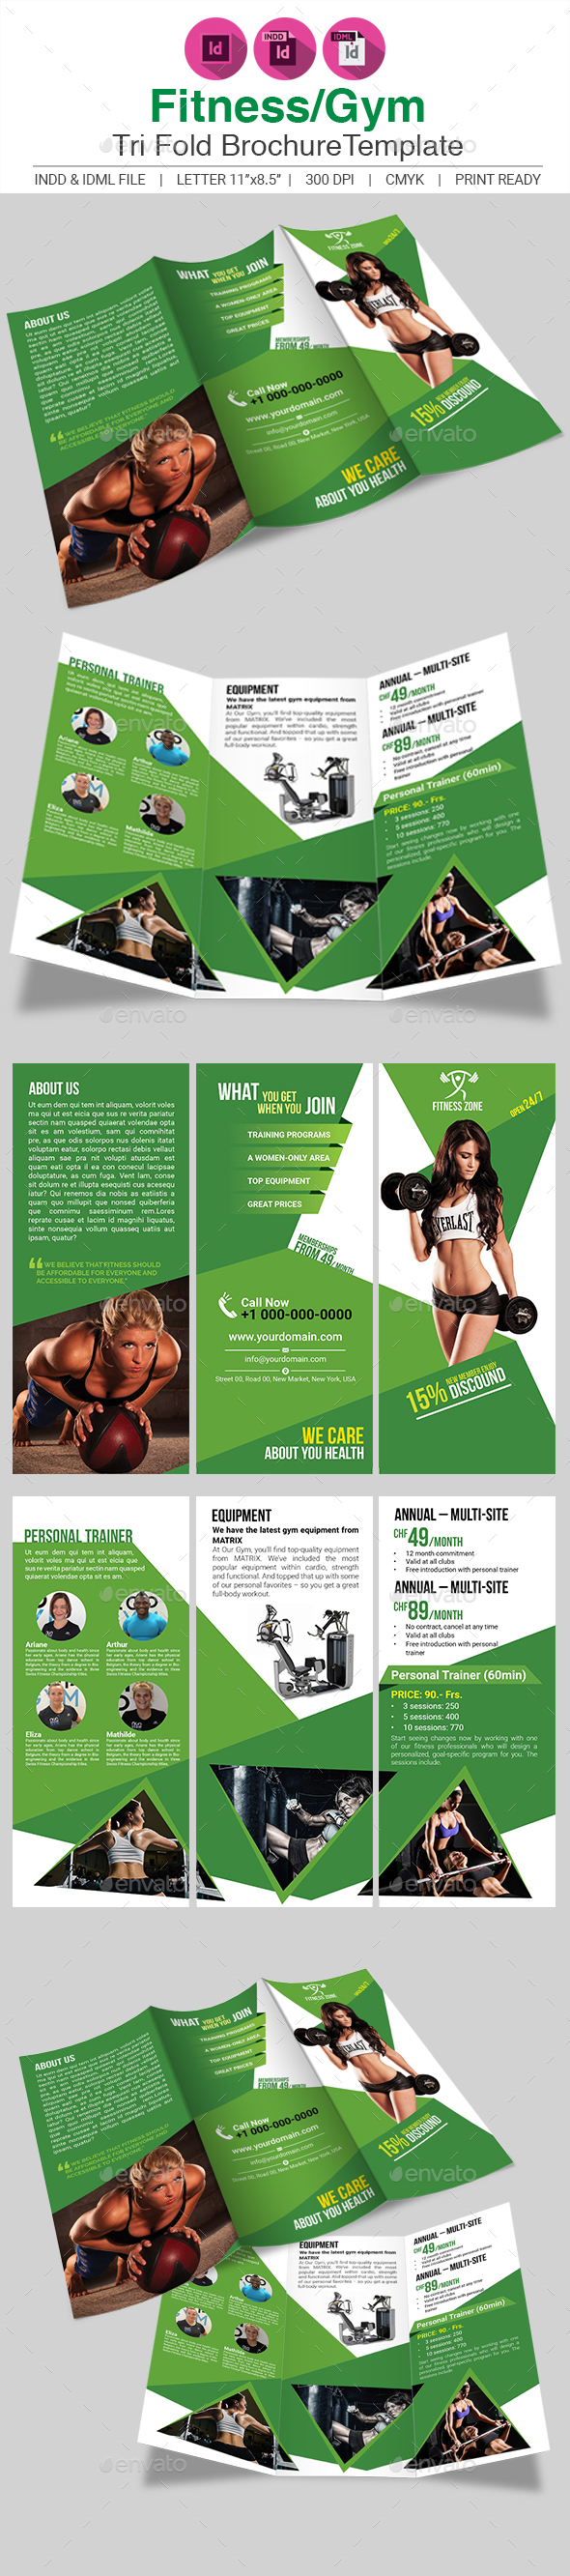 Fitness/Gym Tri-fold Brochure Template - Brochures Print Templates